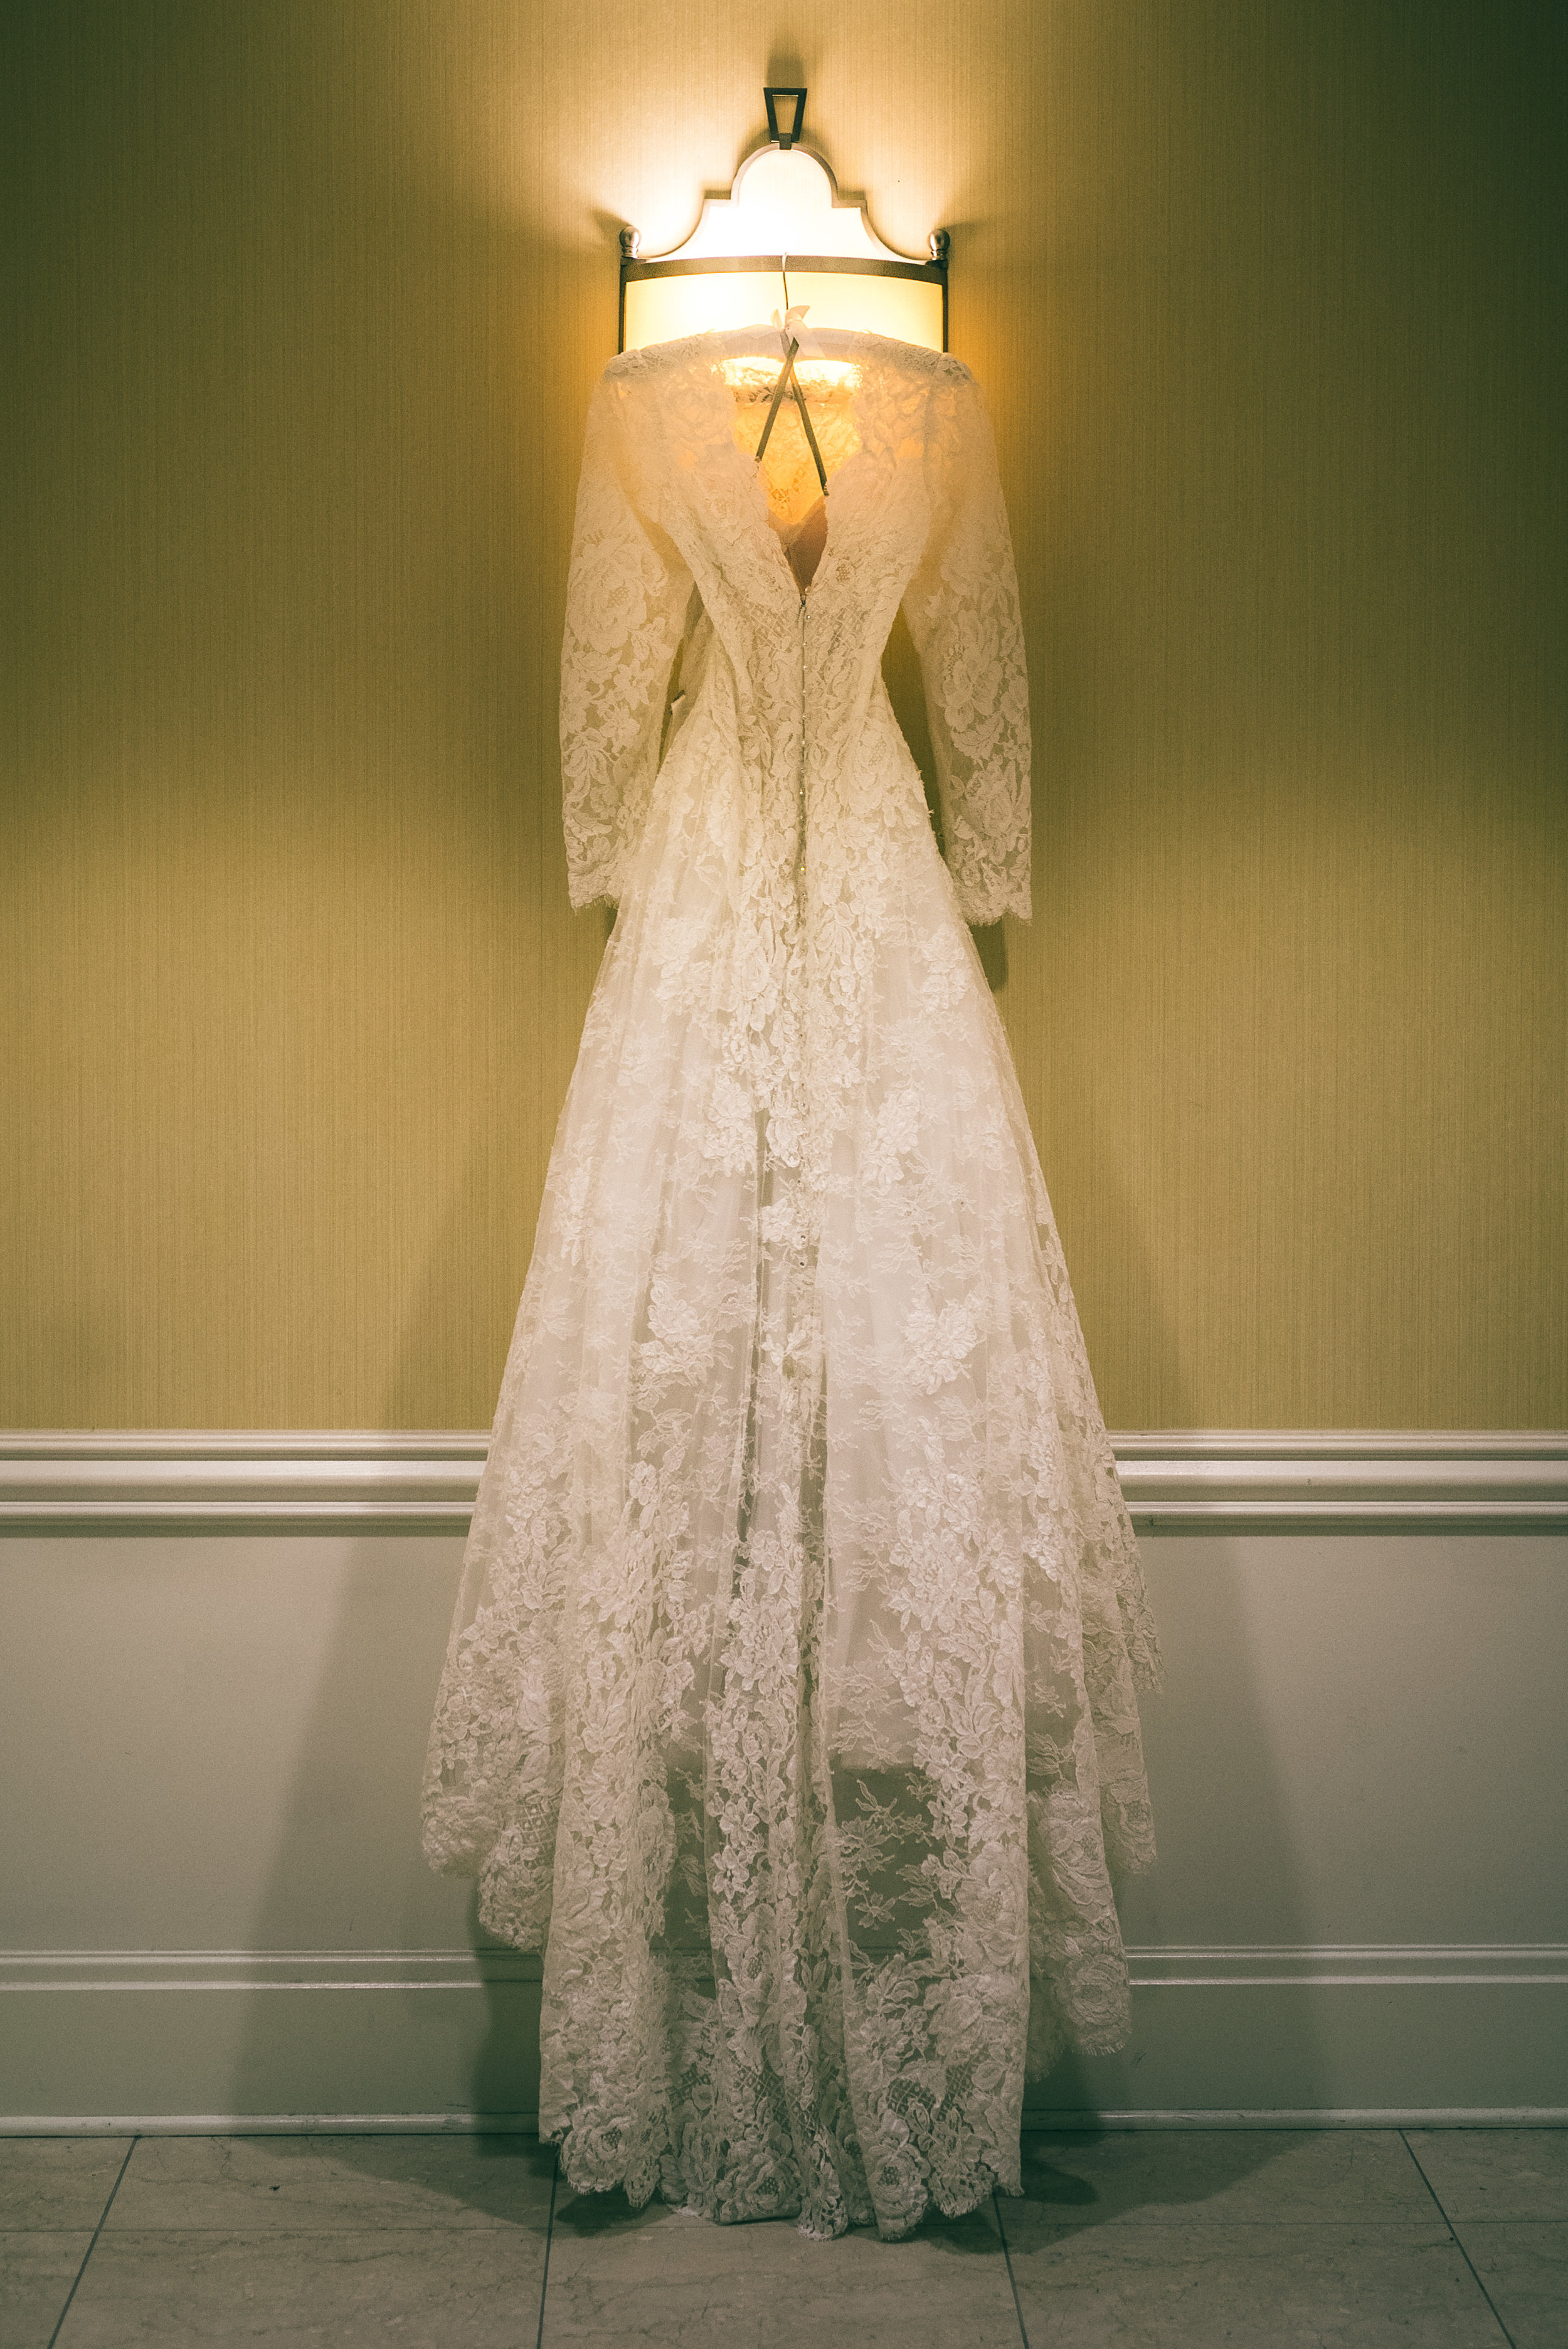 Lace, A-line wedding dress with sleeves.